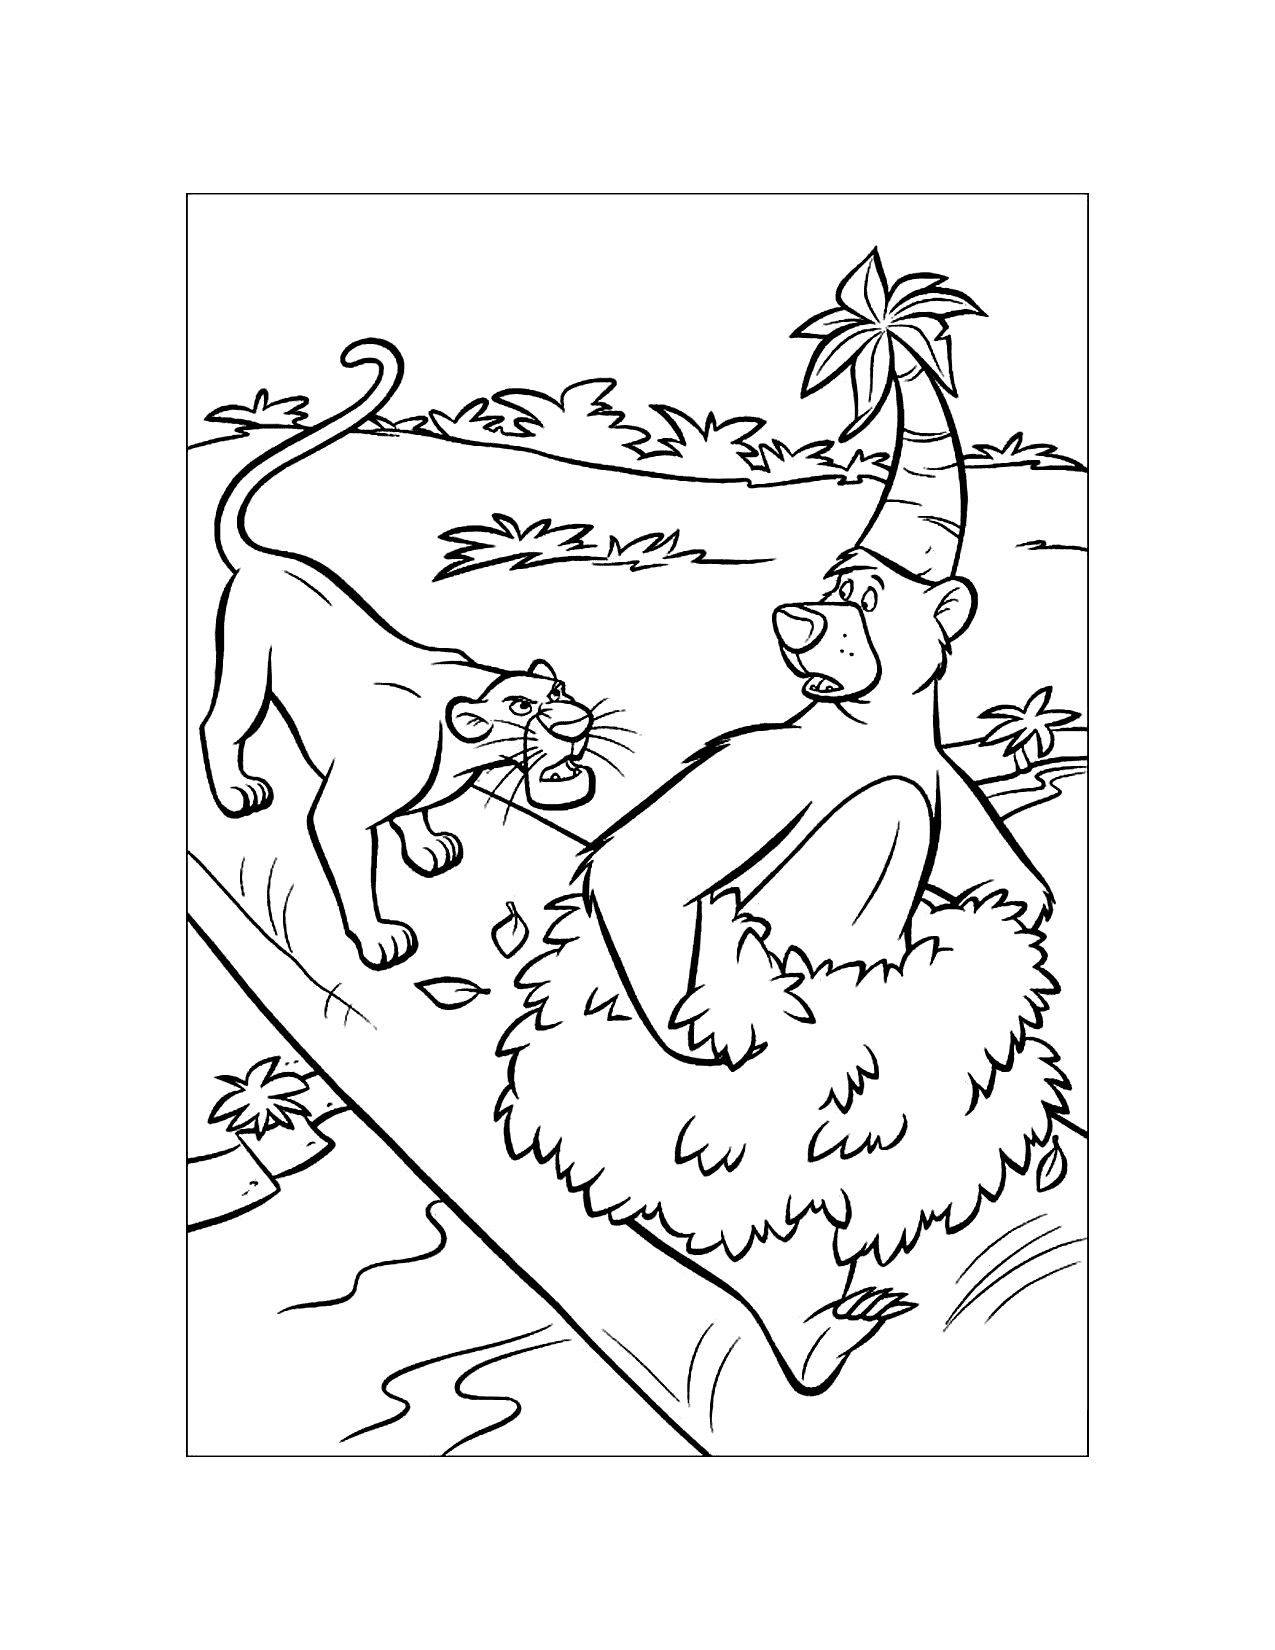 Baloo Gets In Trouble Jungle Book Coloring Page